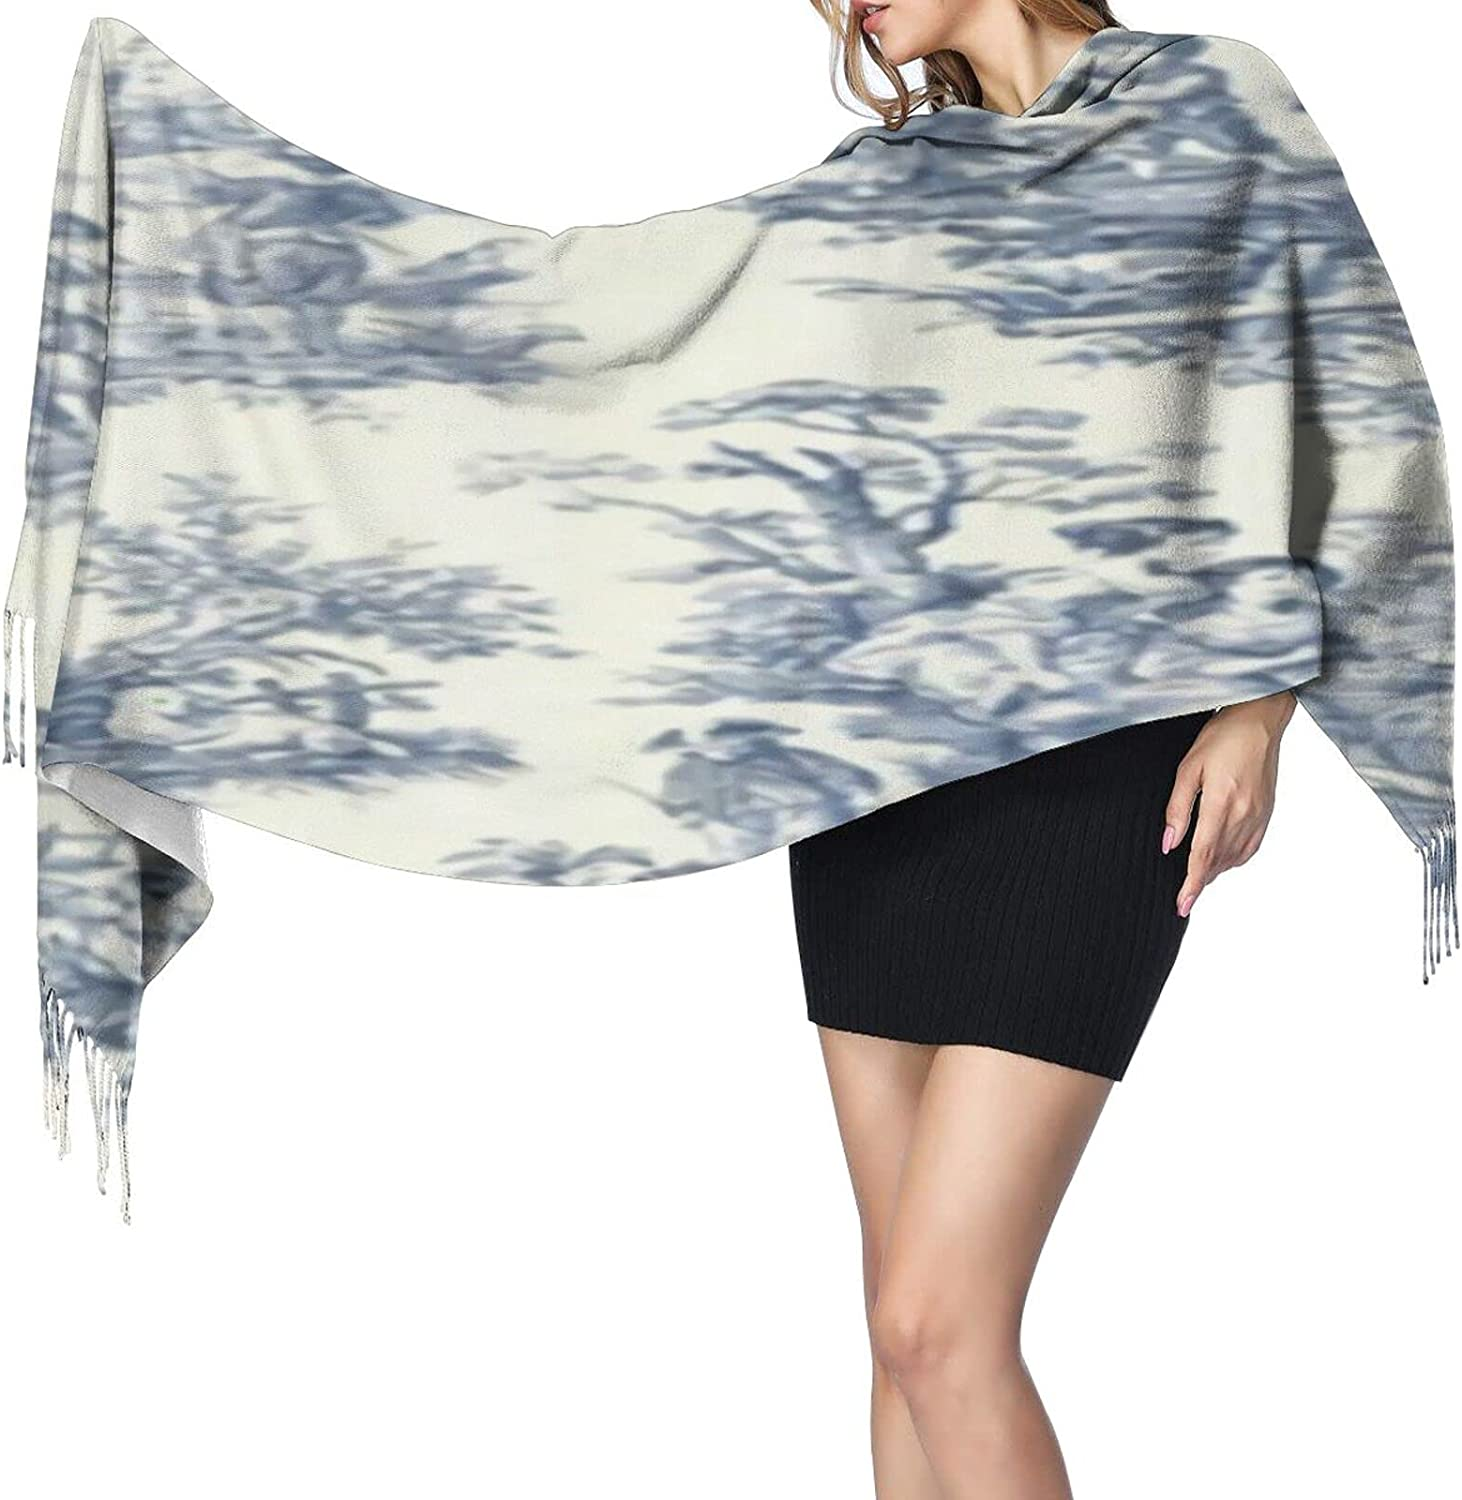 Cashmere fringed scarf Toile De Jouy Wallpaper winter extra large scarf